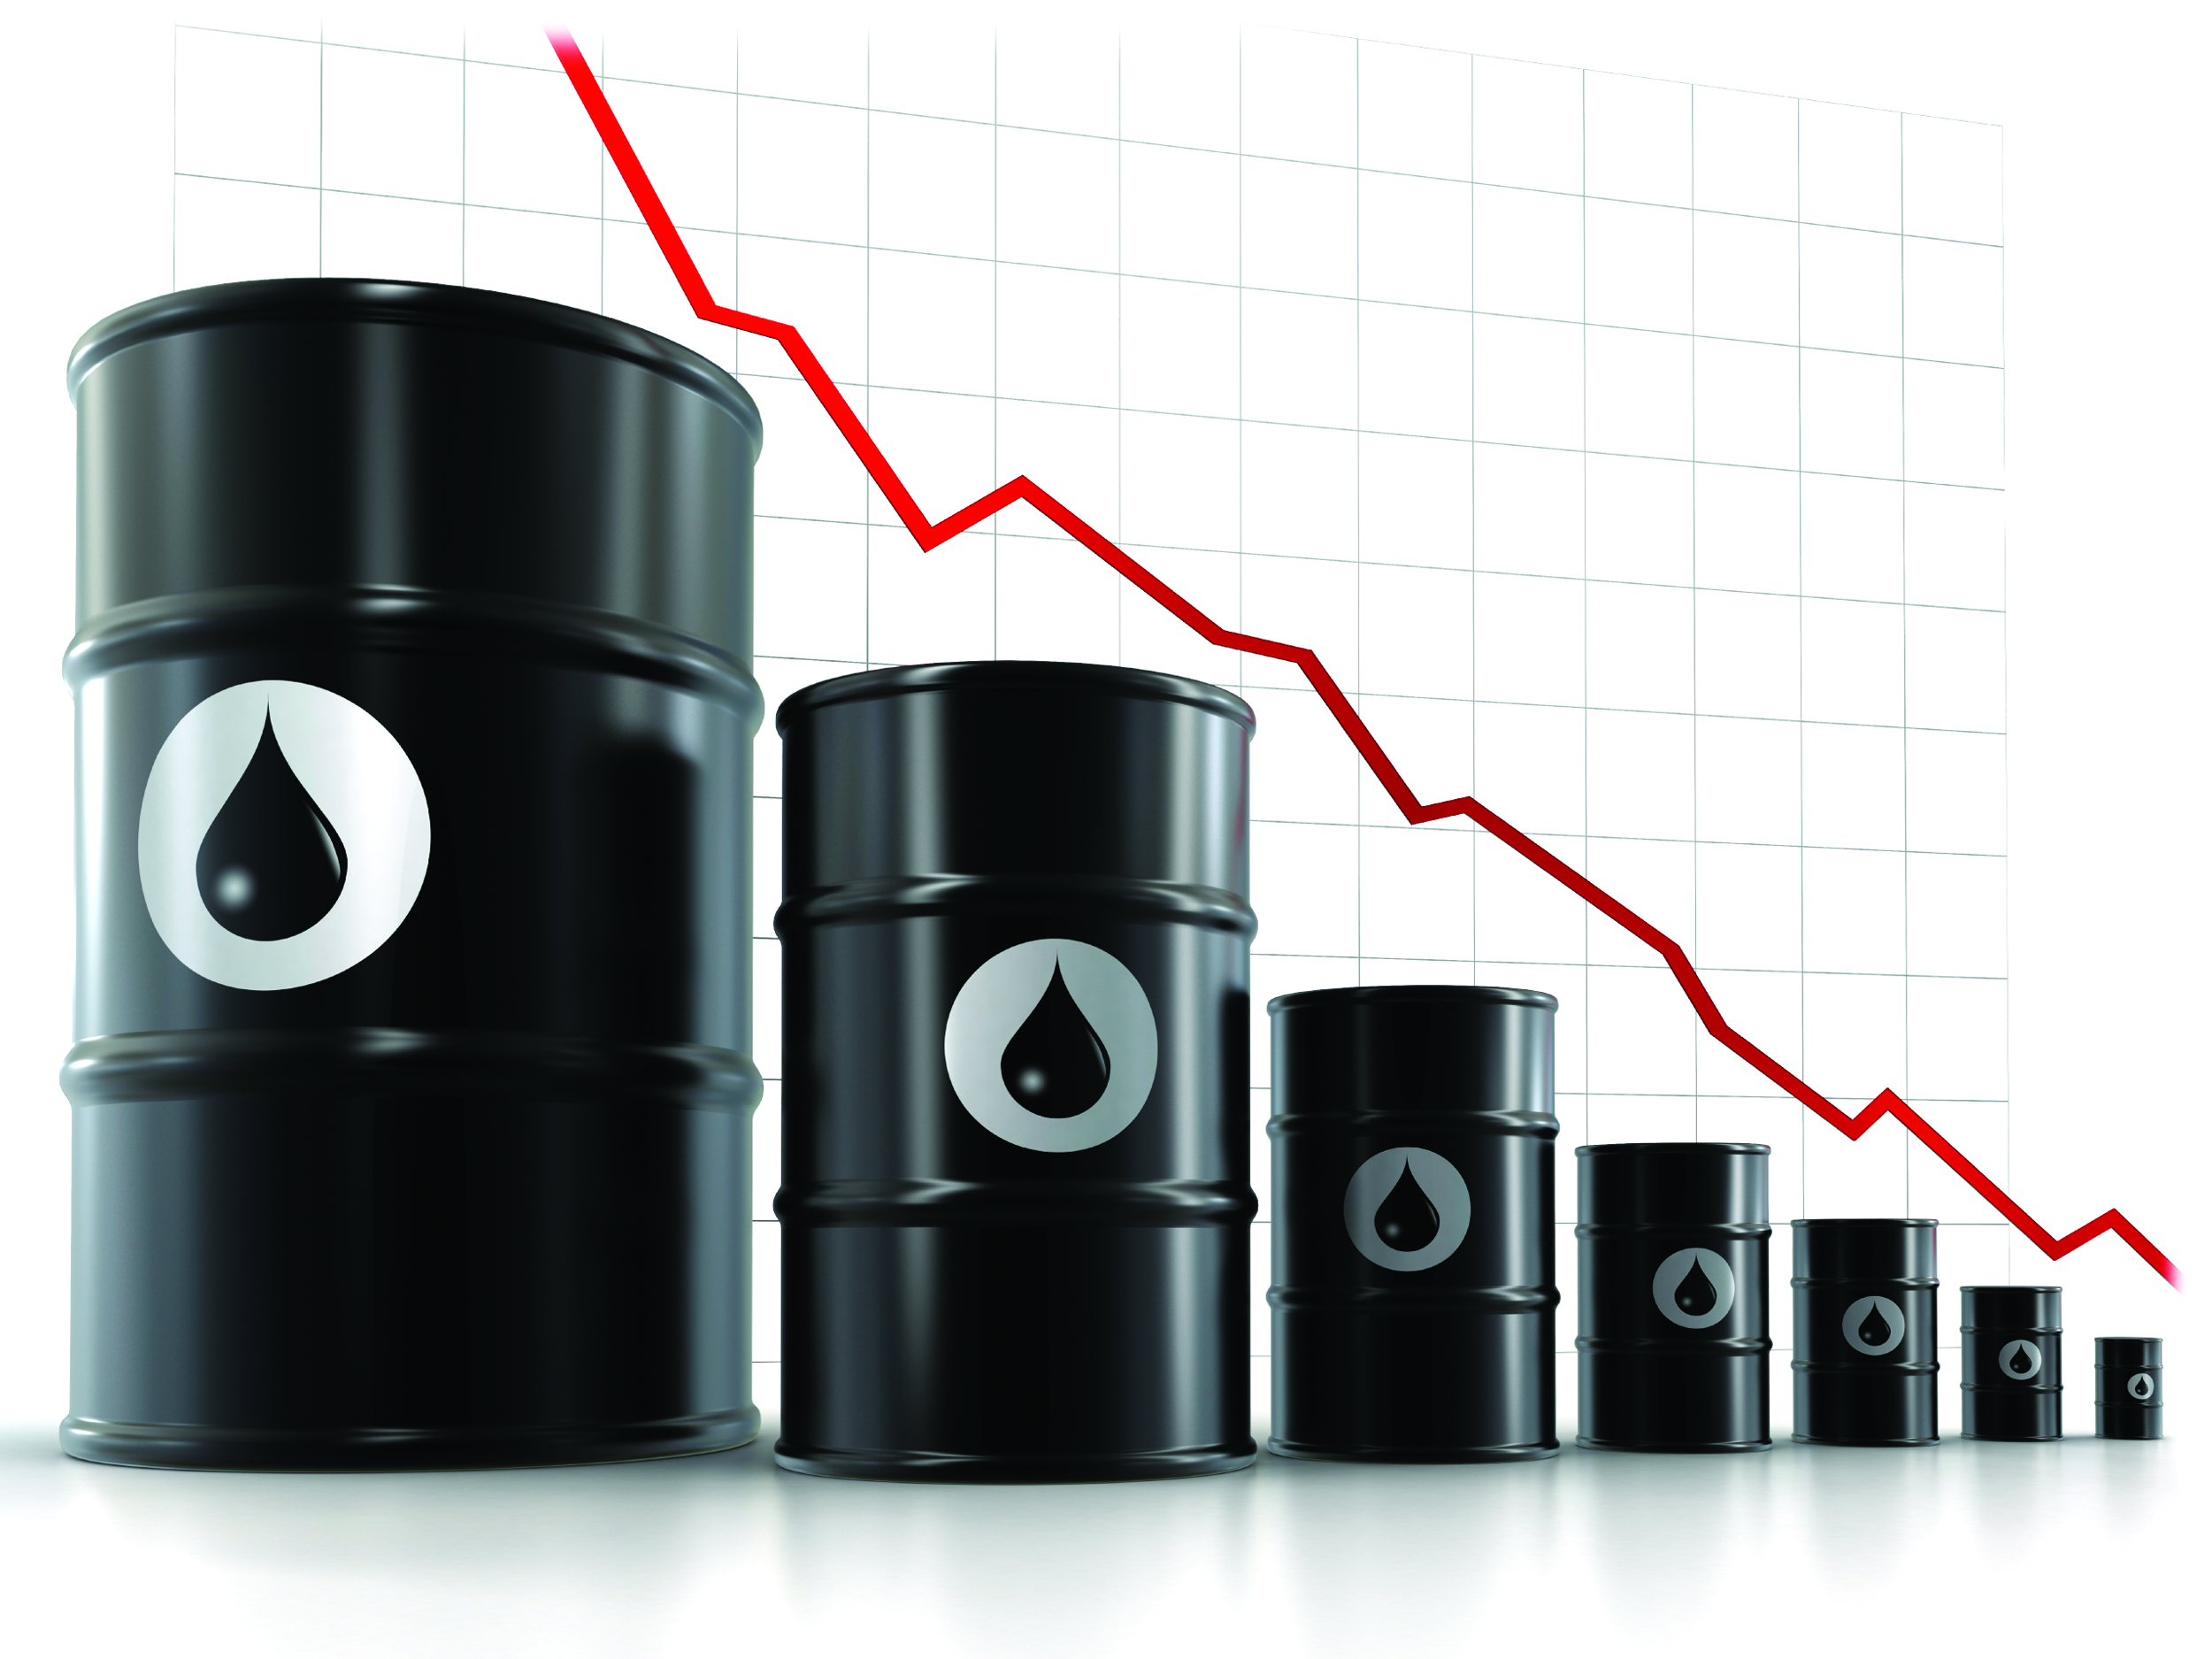 Oil Prices and Company defaults